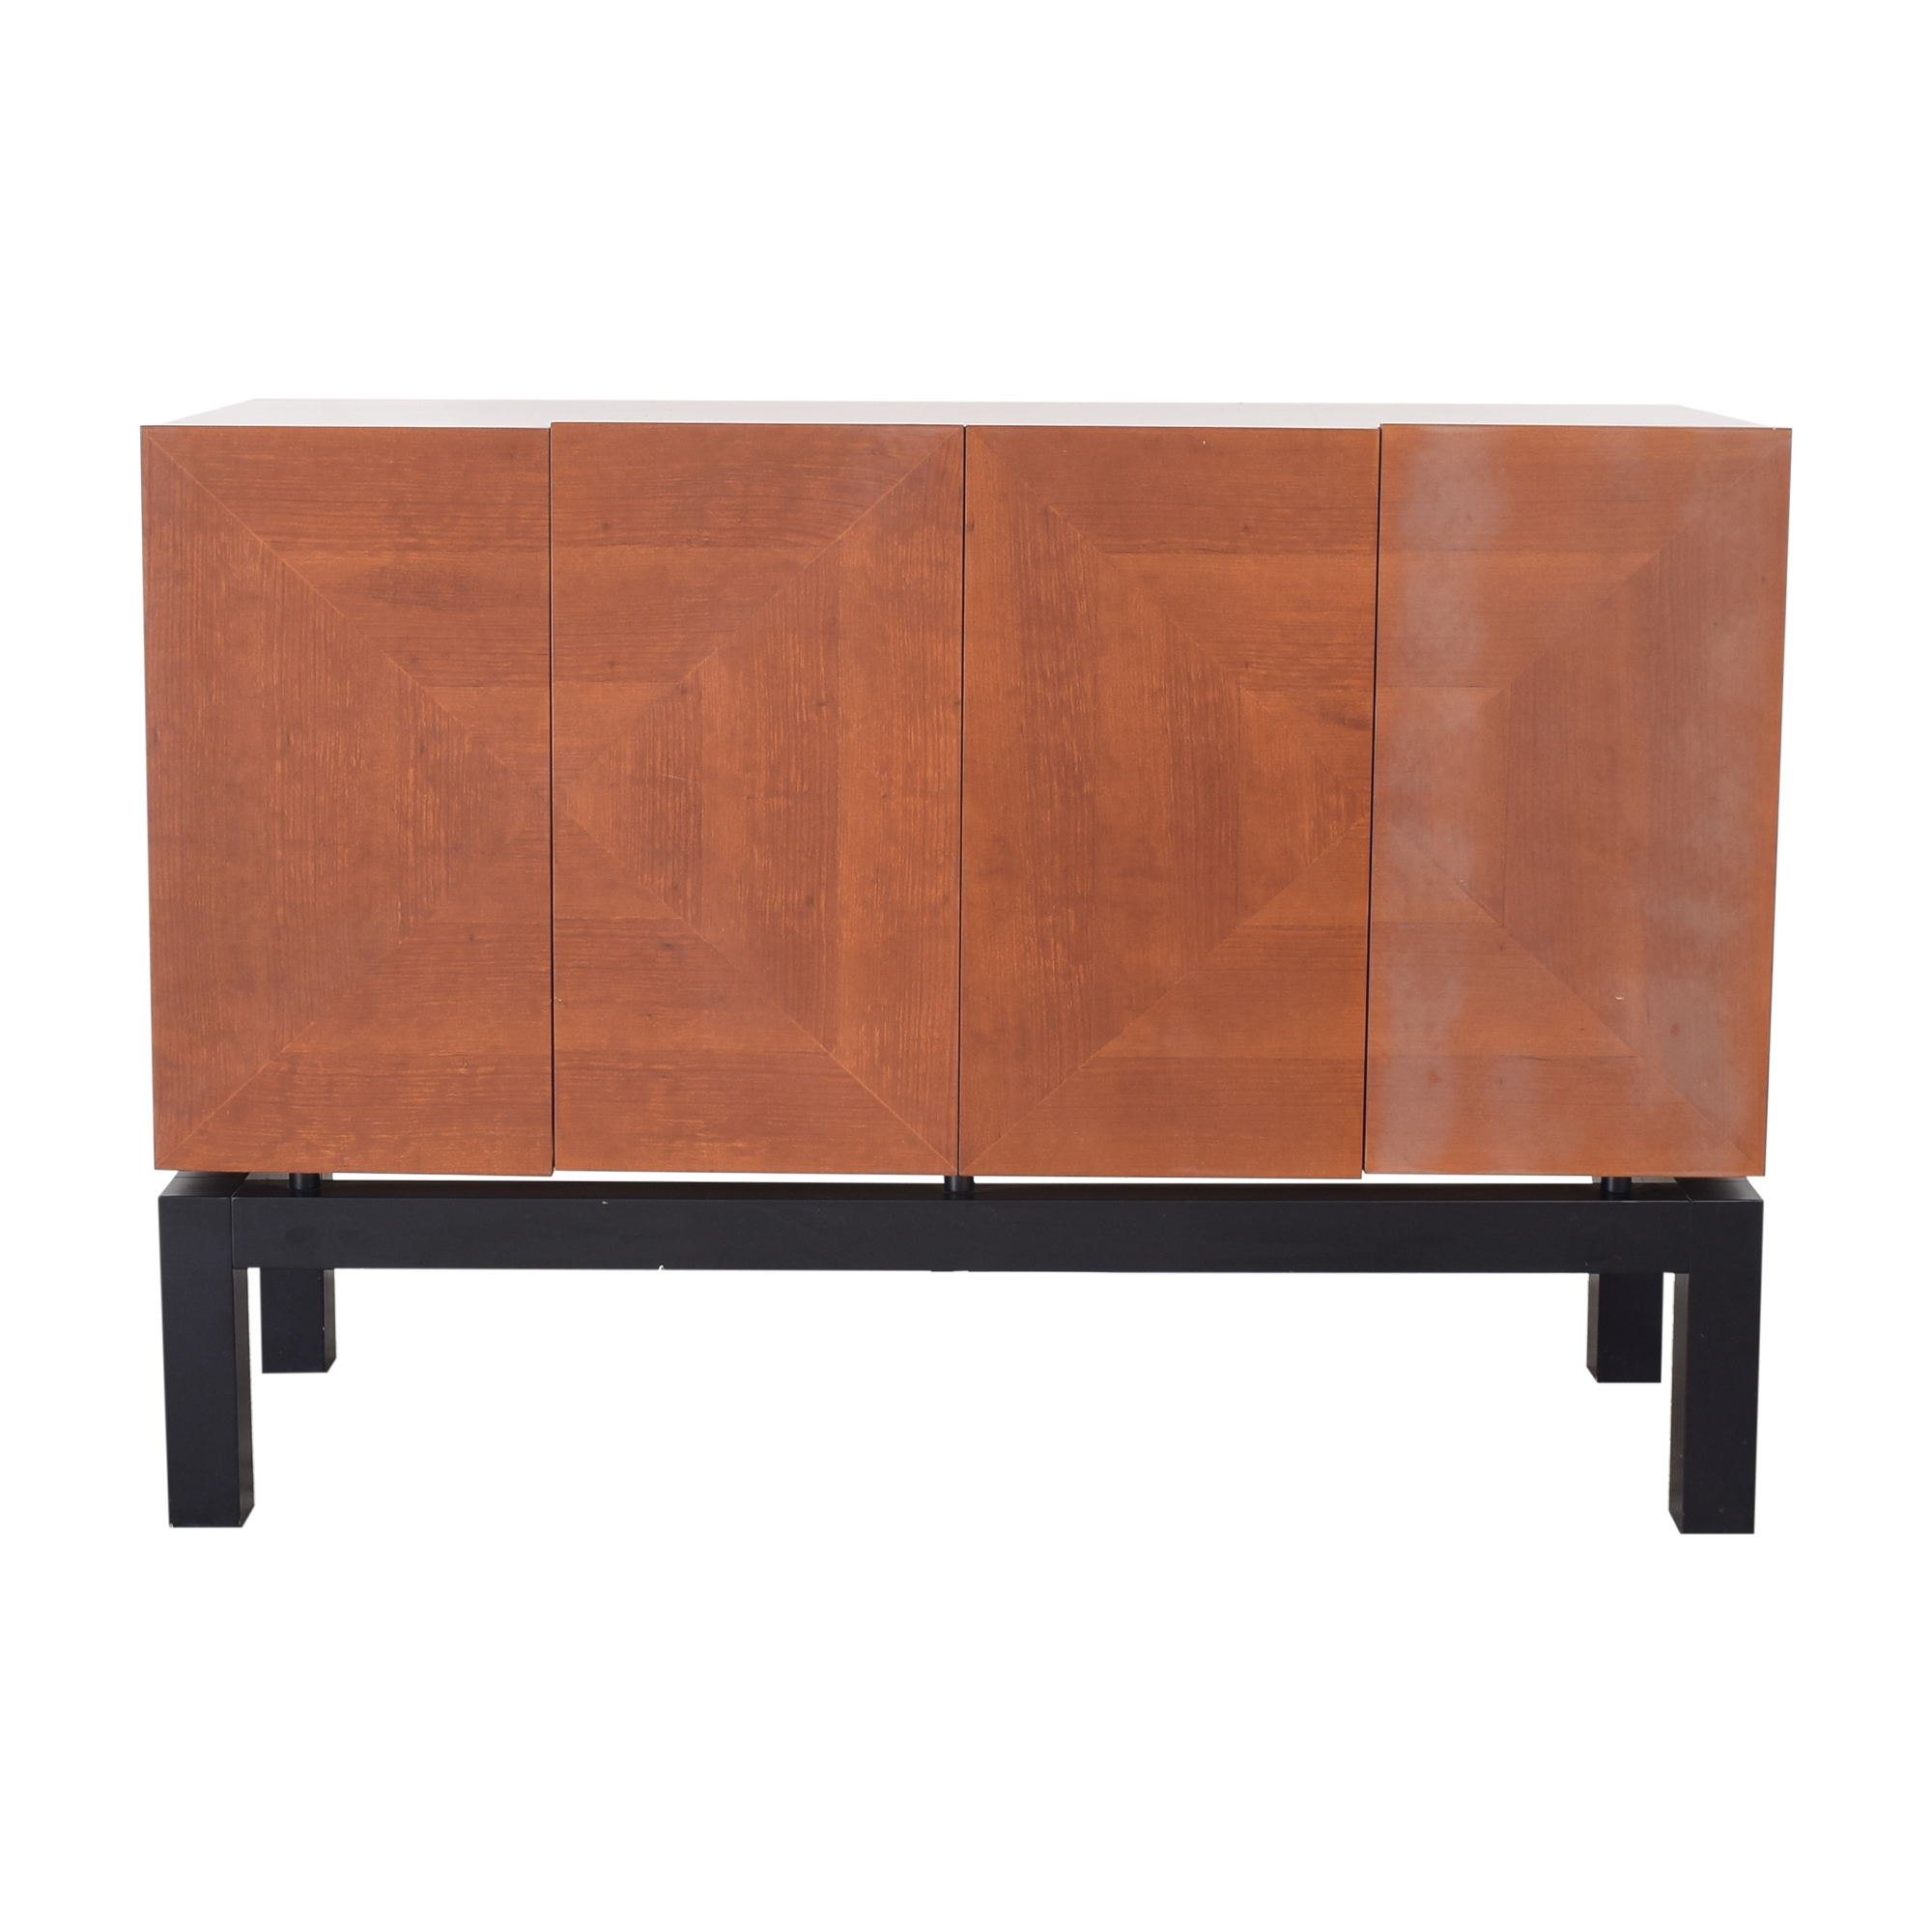 Ligna Furniture Ligna Furniture Console brown & black